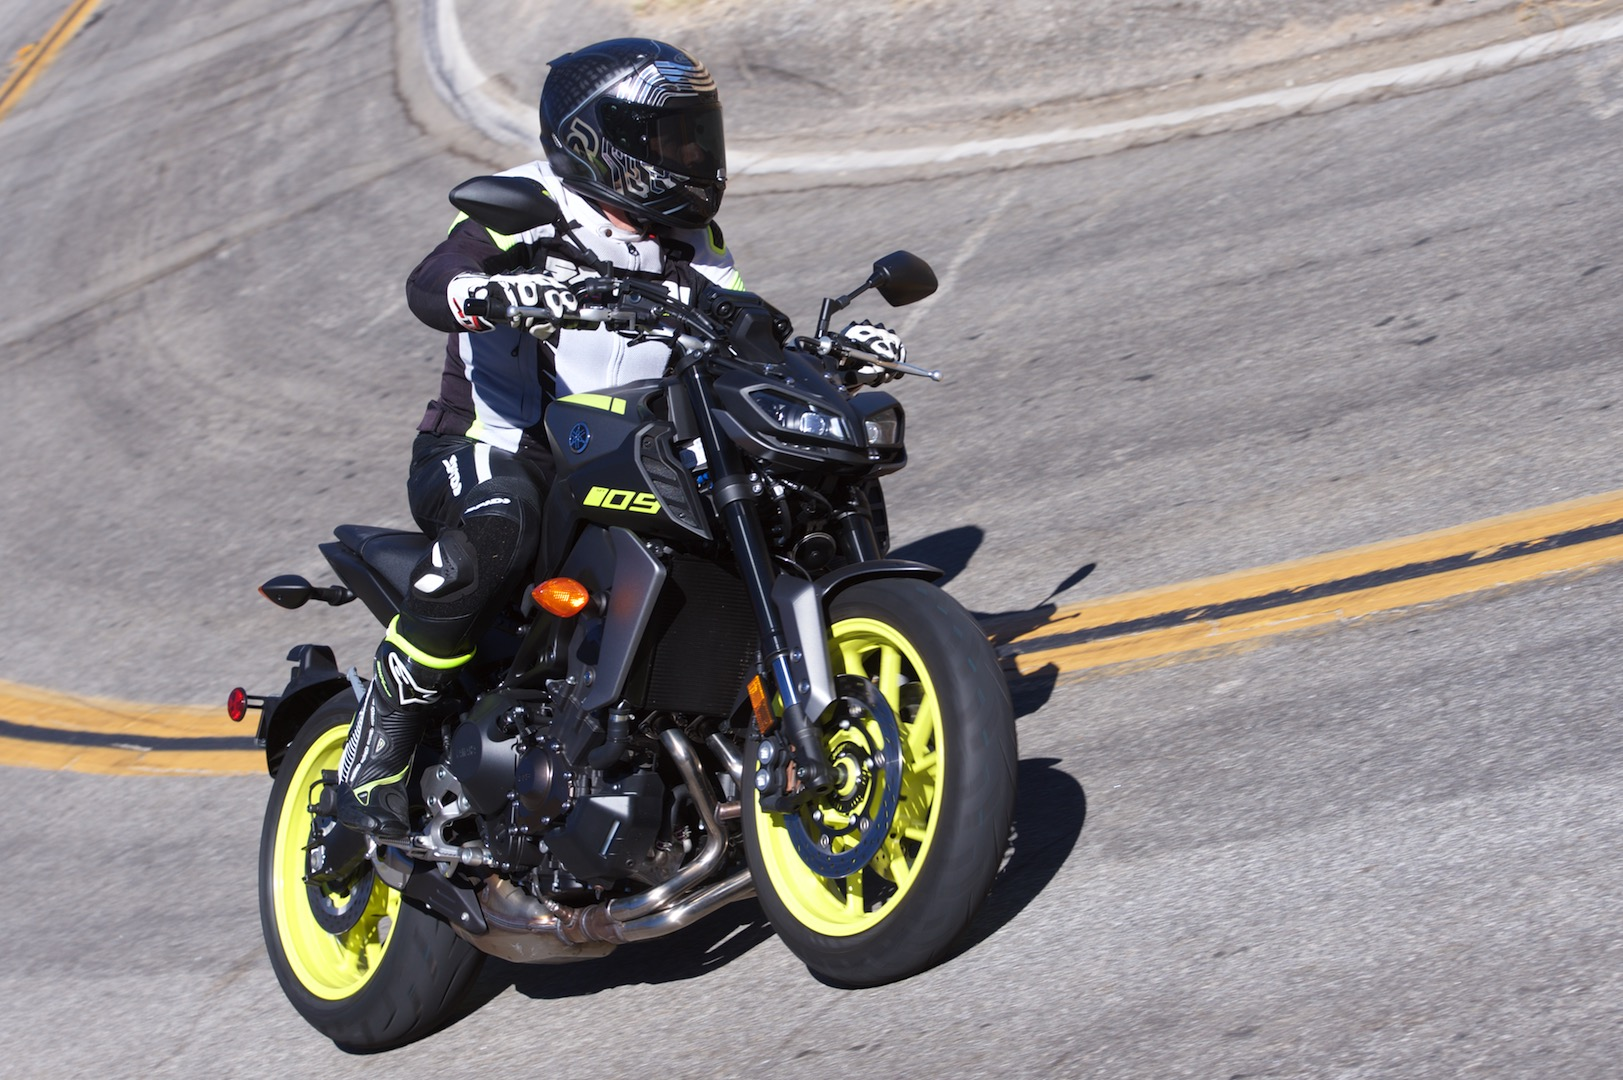 09 >> 2018 Yamaha Mt 09 Review 14 Fast Facts